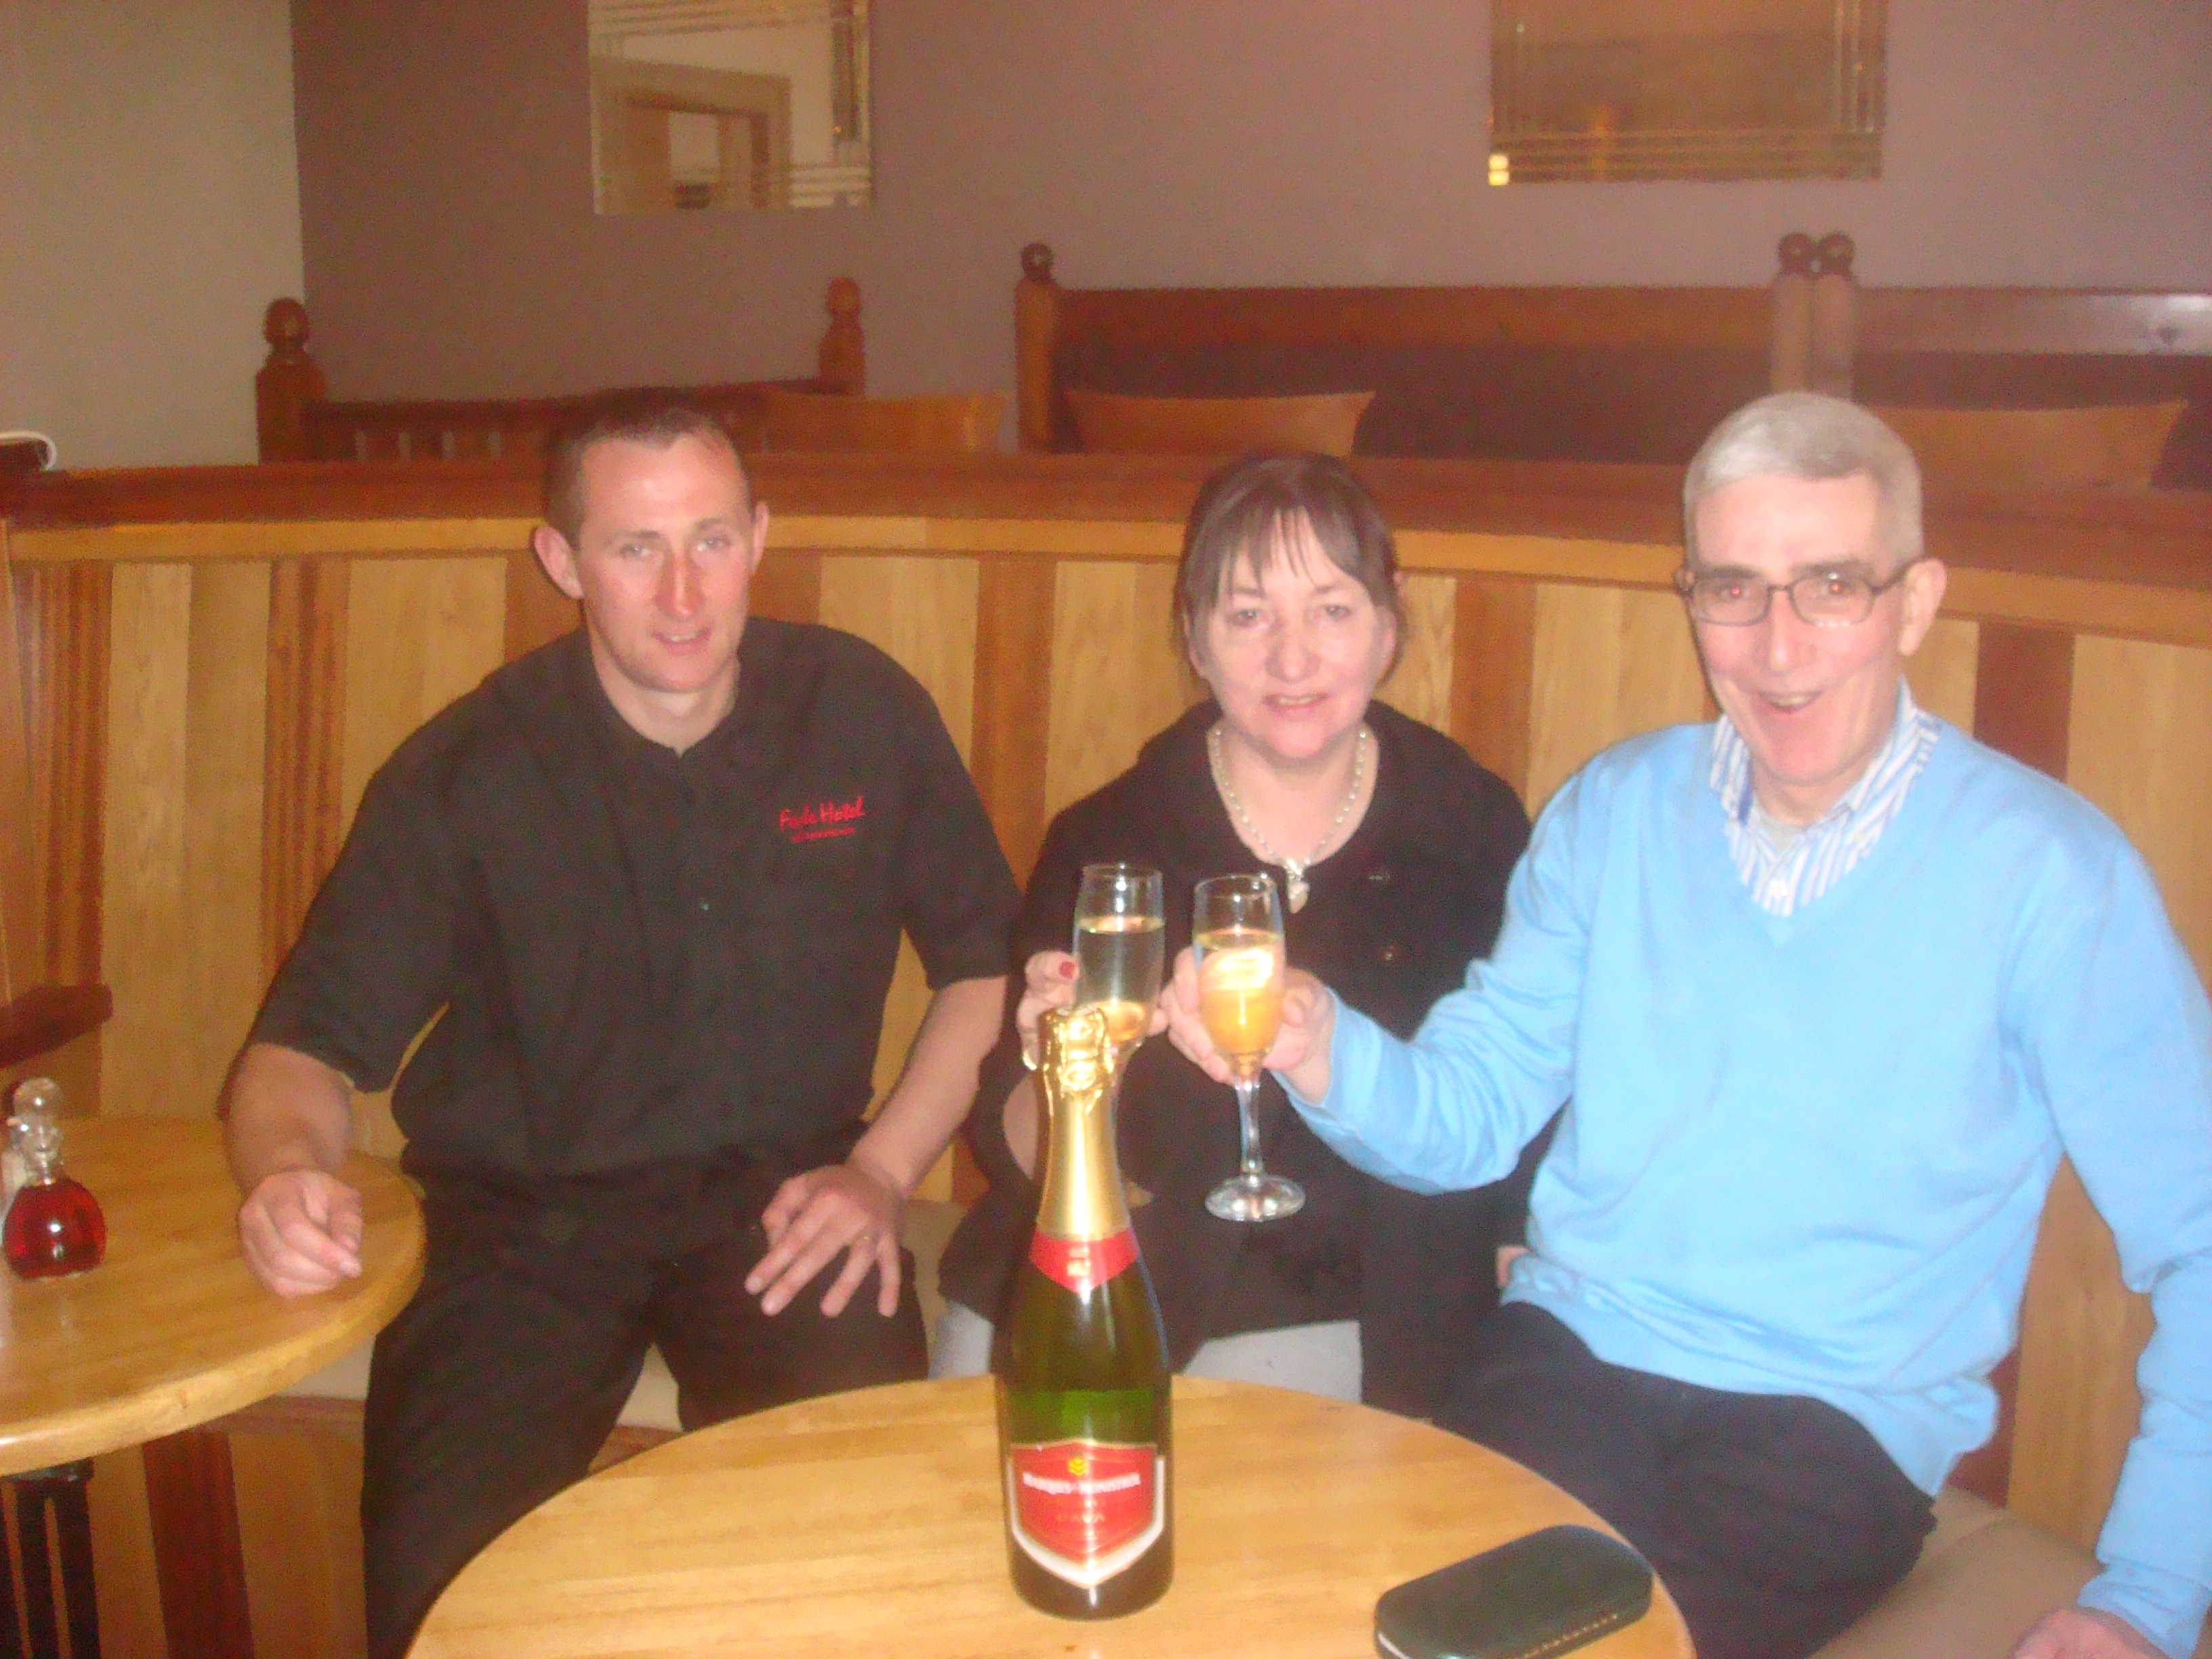 Champagne Weekend for two at DylanFest on the Lough